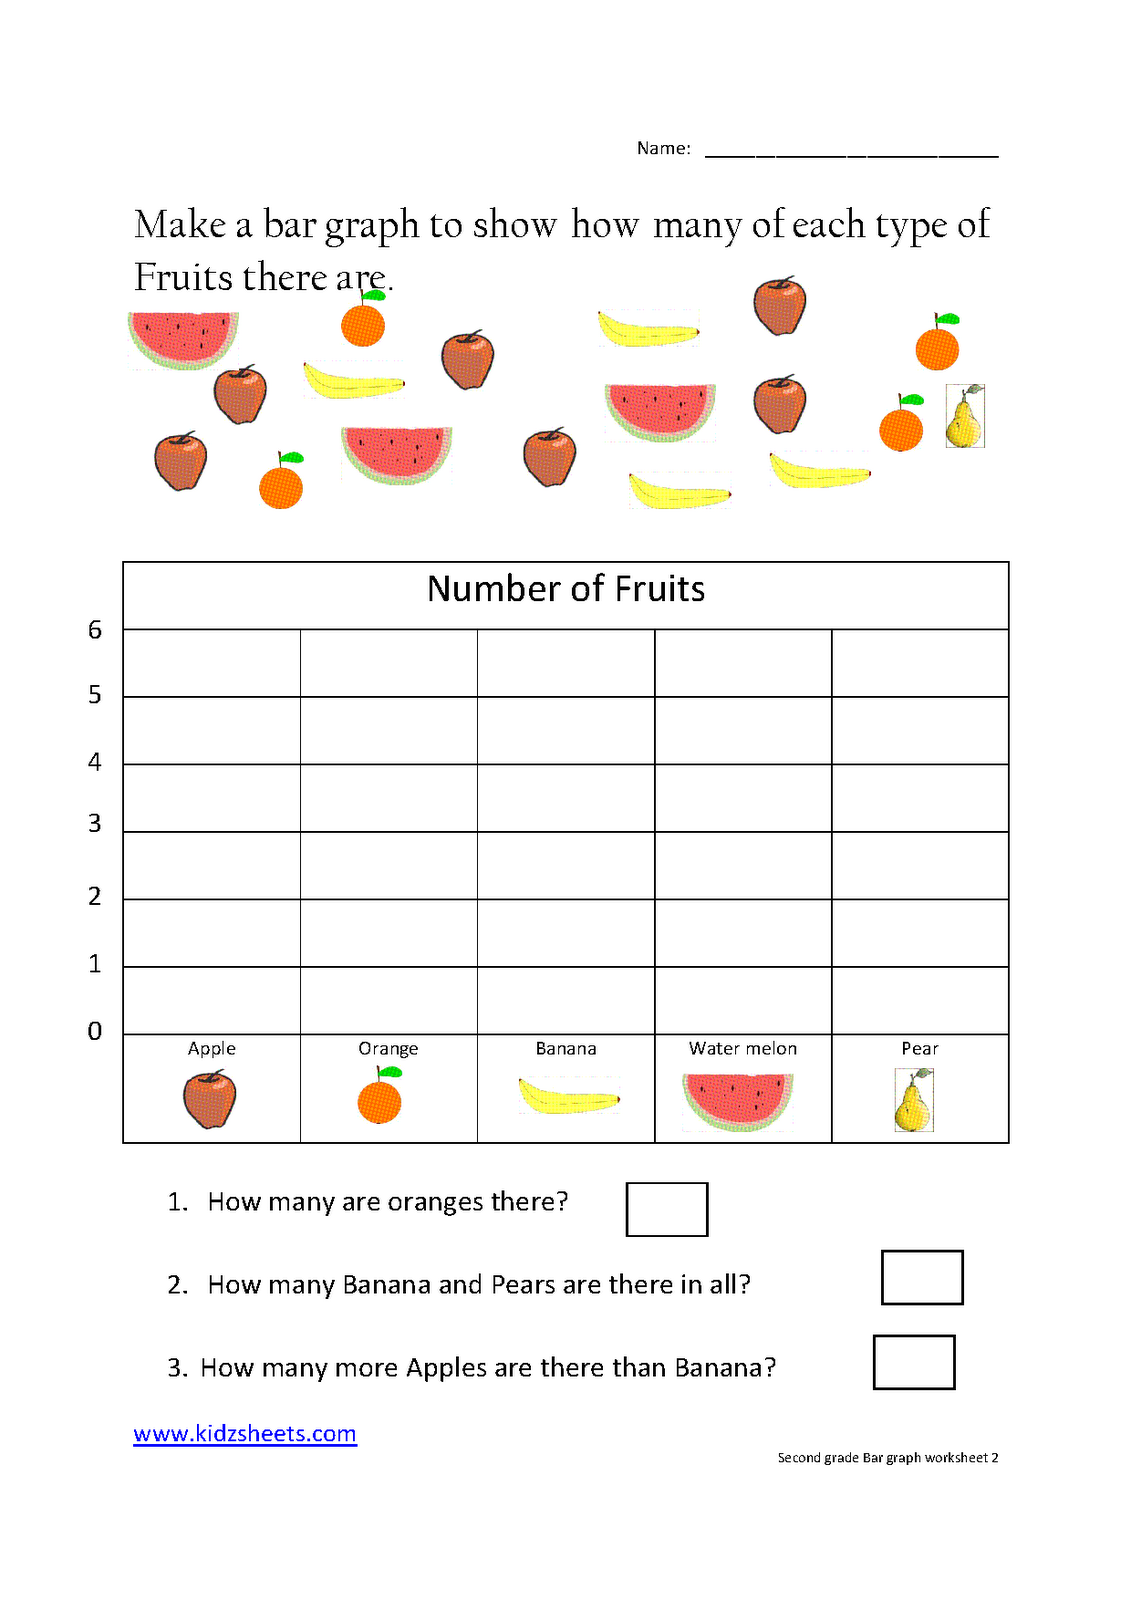 Kidz Worksheets: Second Grade Bar Graph Worksheet2 [ 1600 x 1131 Pixel ]